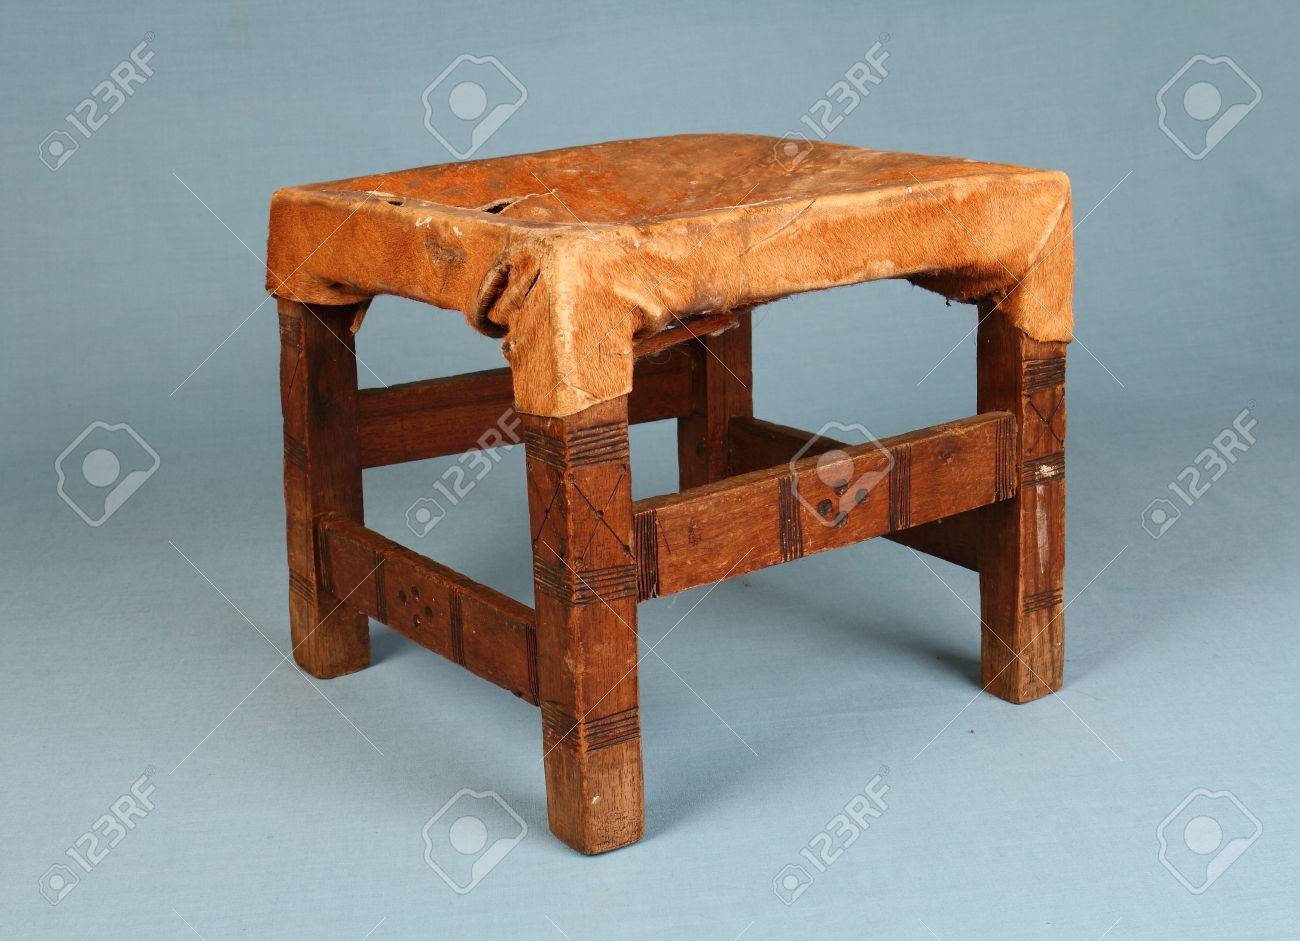 Sensational Traditional Handmade African Milking Stool Made From Animal Hide Gamerscity Chair Design For Home Gamerscityorg